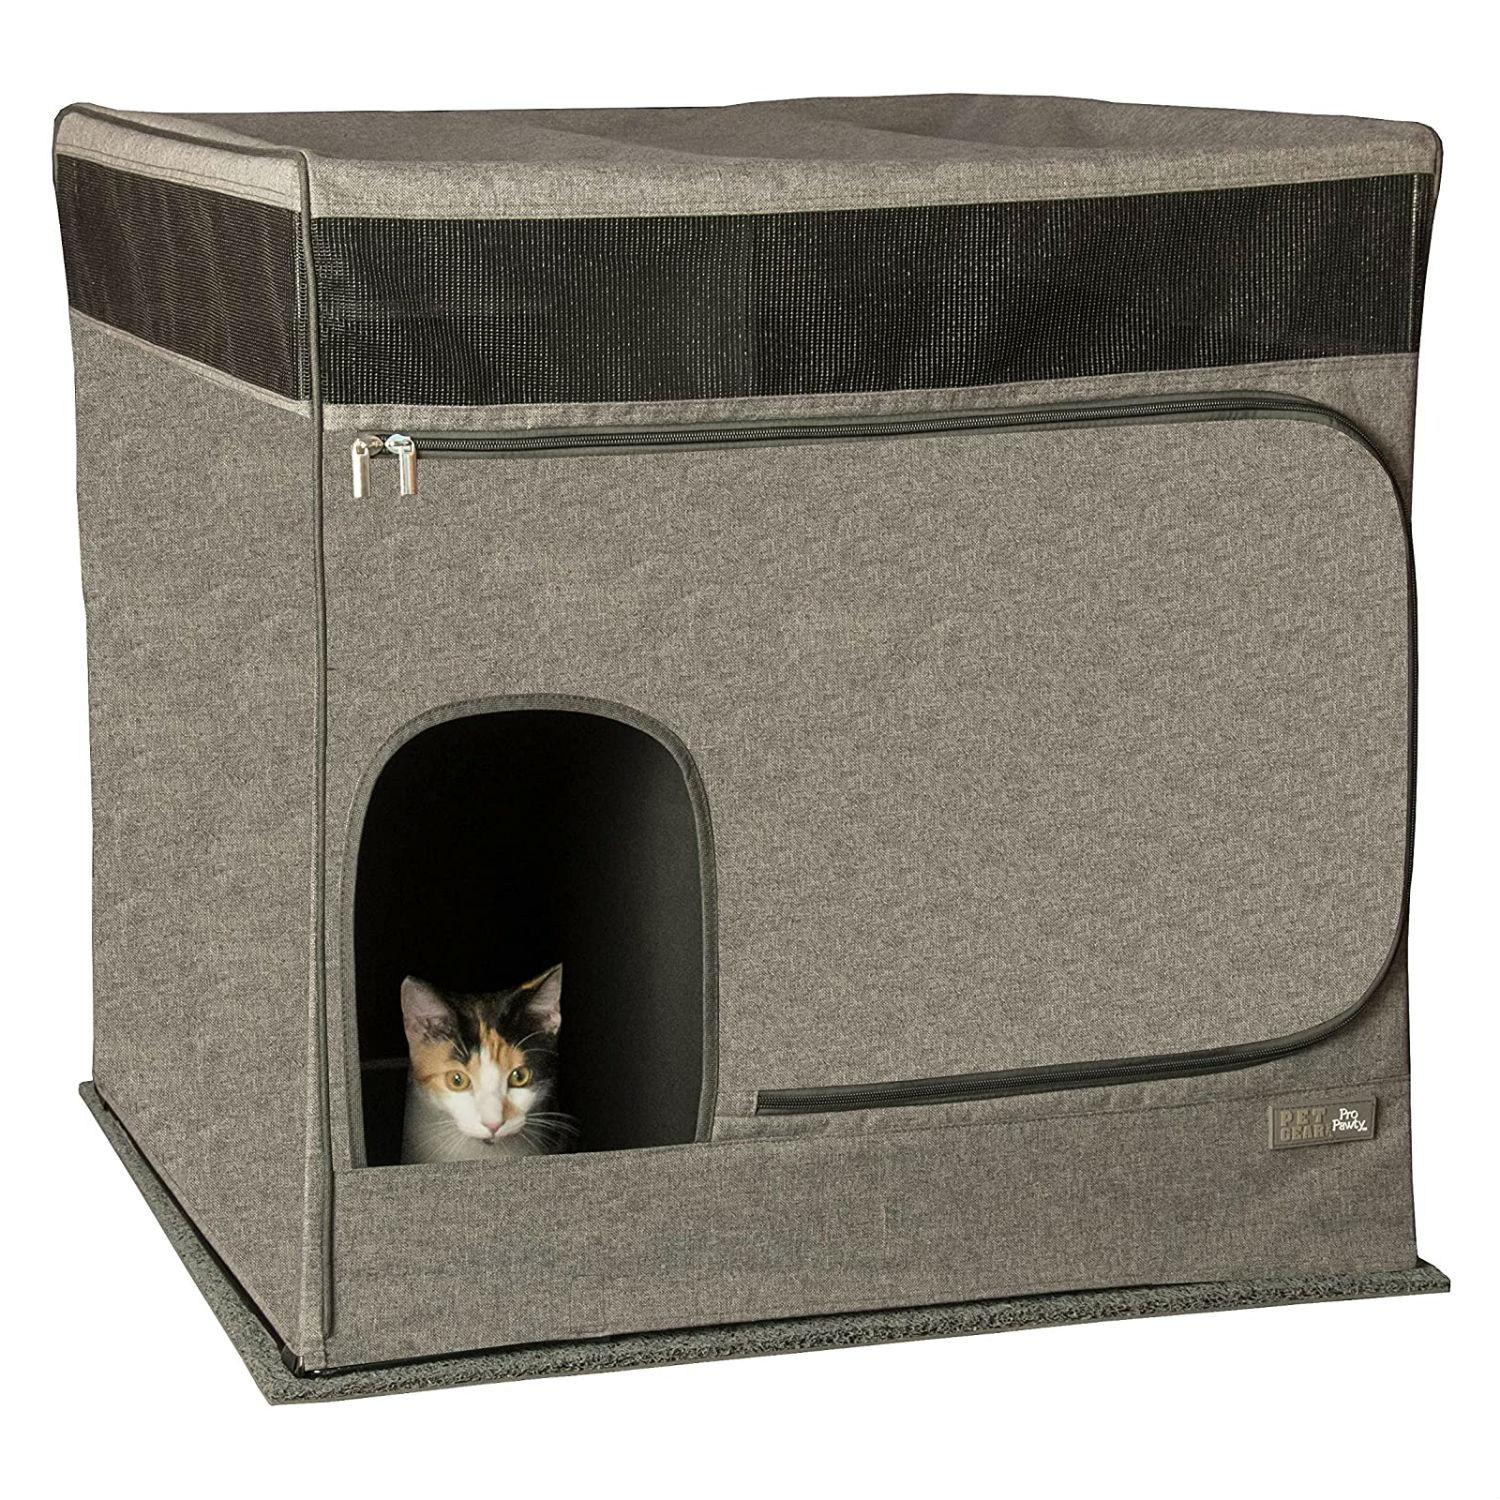 Pet Gear Pro Pawty for Cats - Soft Charcoal